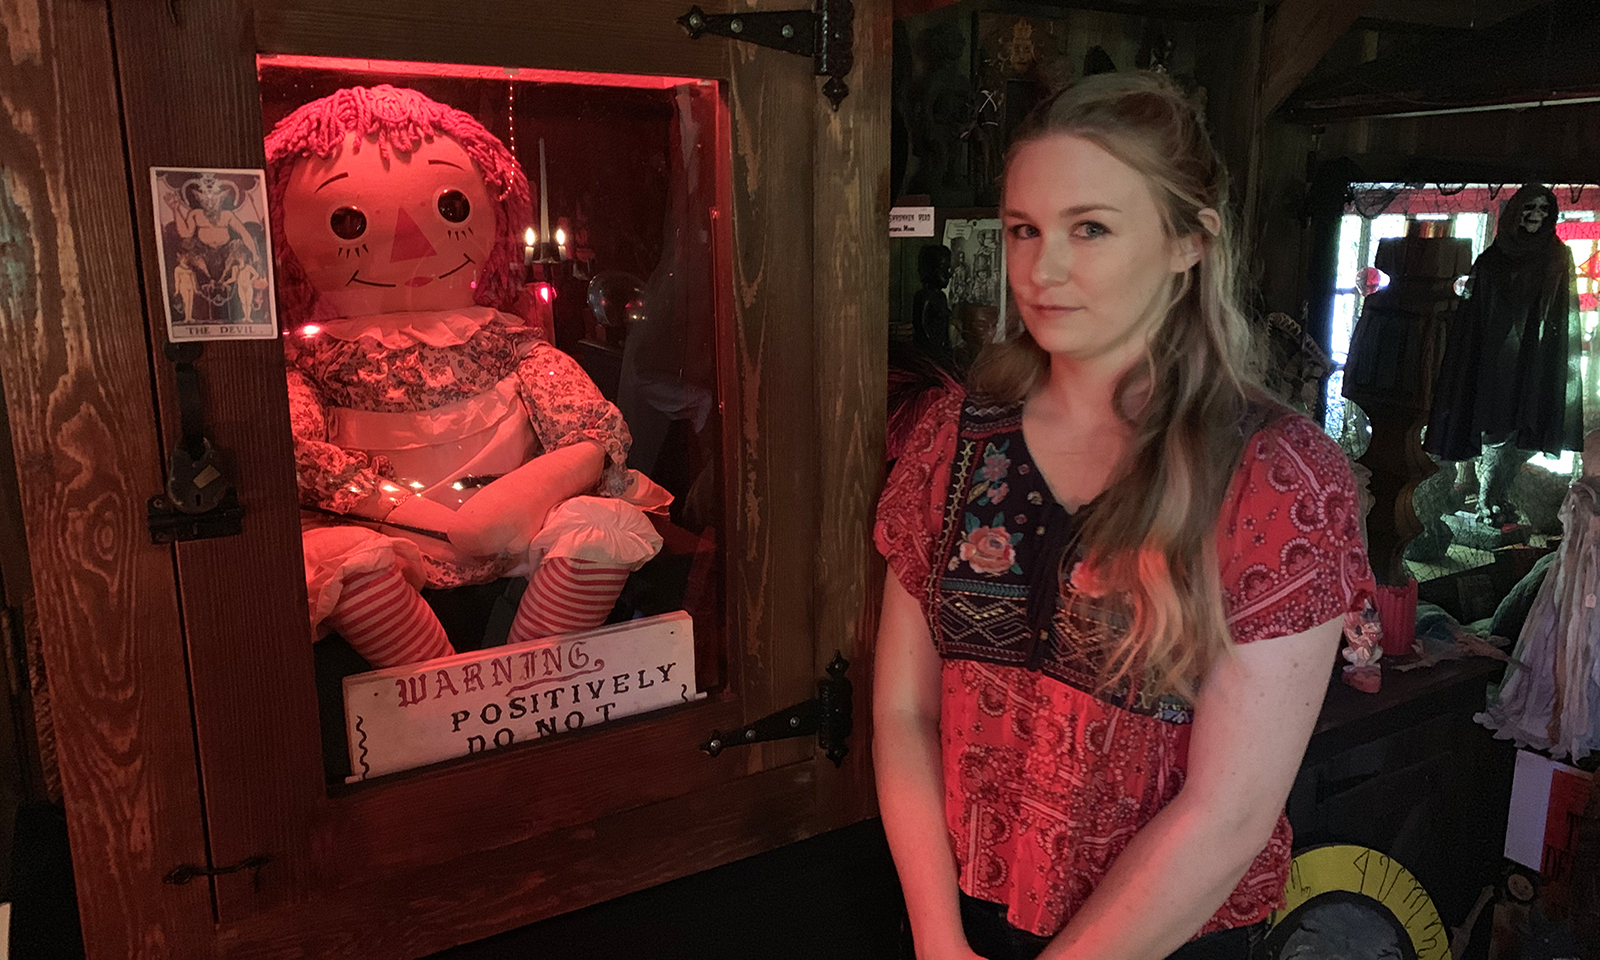 malorie-mackey-malories-adventures-weird-world-adventures-travel-annabelle-annabelle-doll-nespr-new-england-society-for-psychic-research-ed-and-lorraine-warren-main